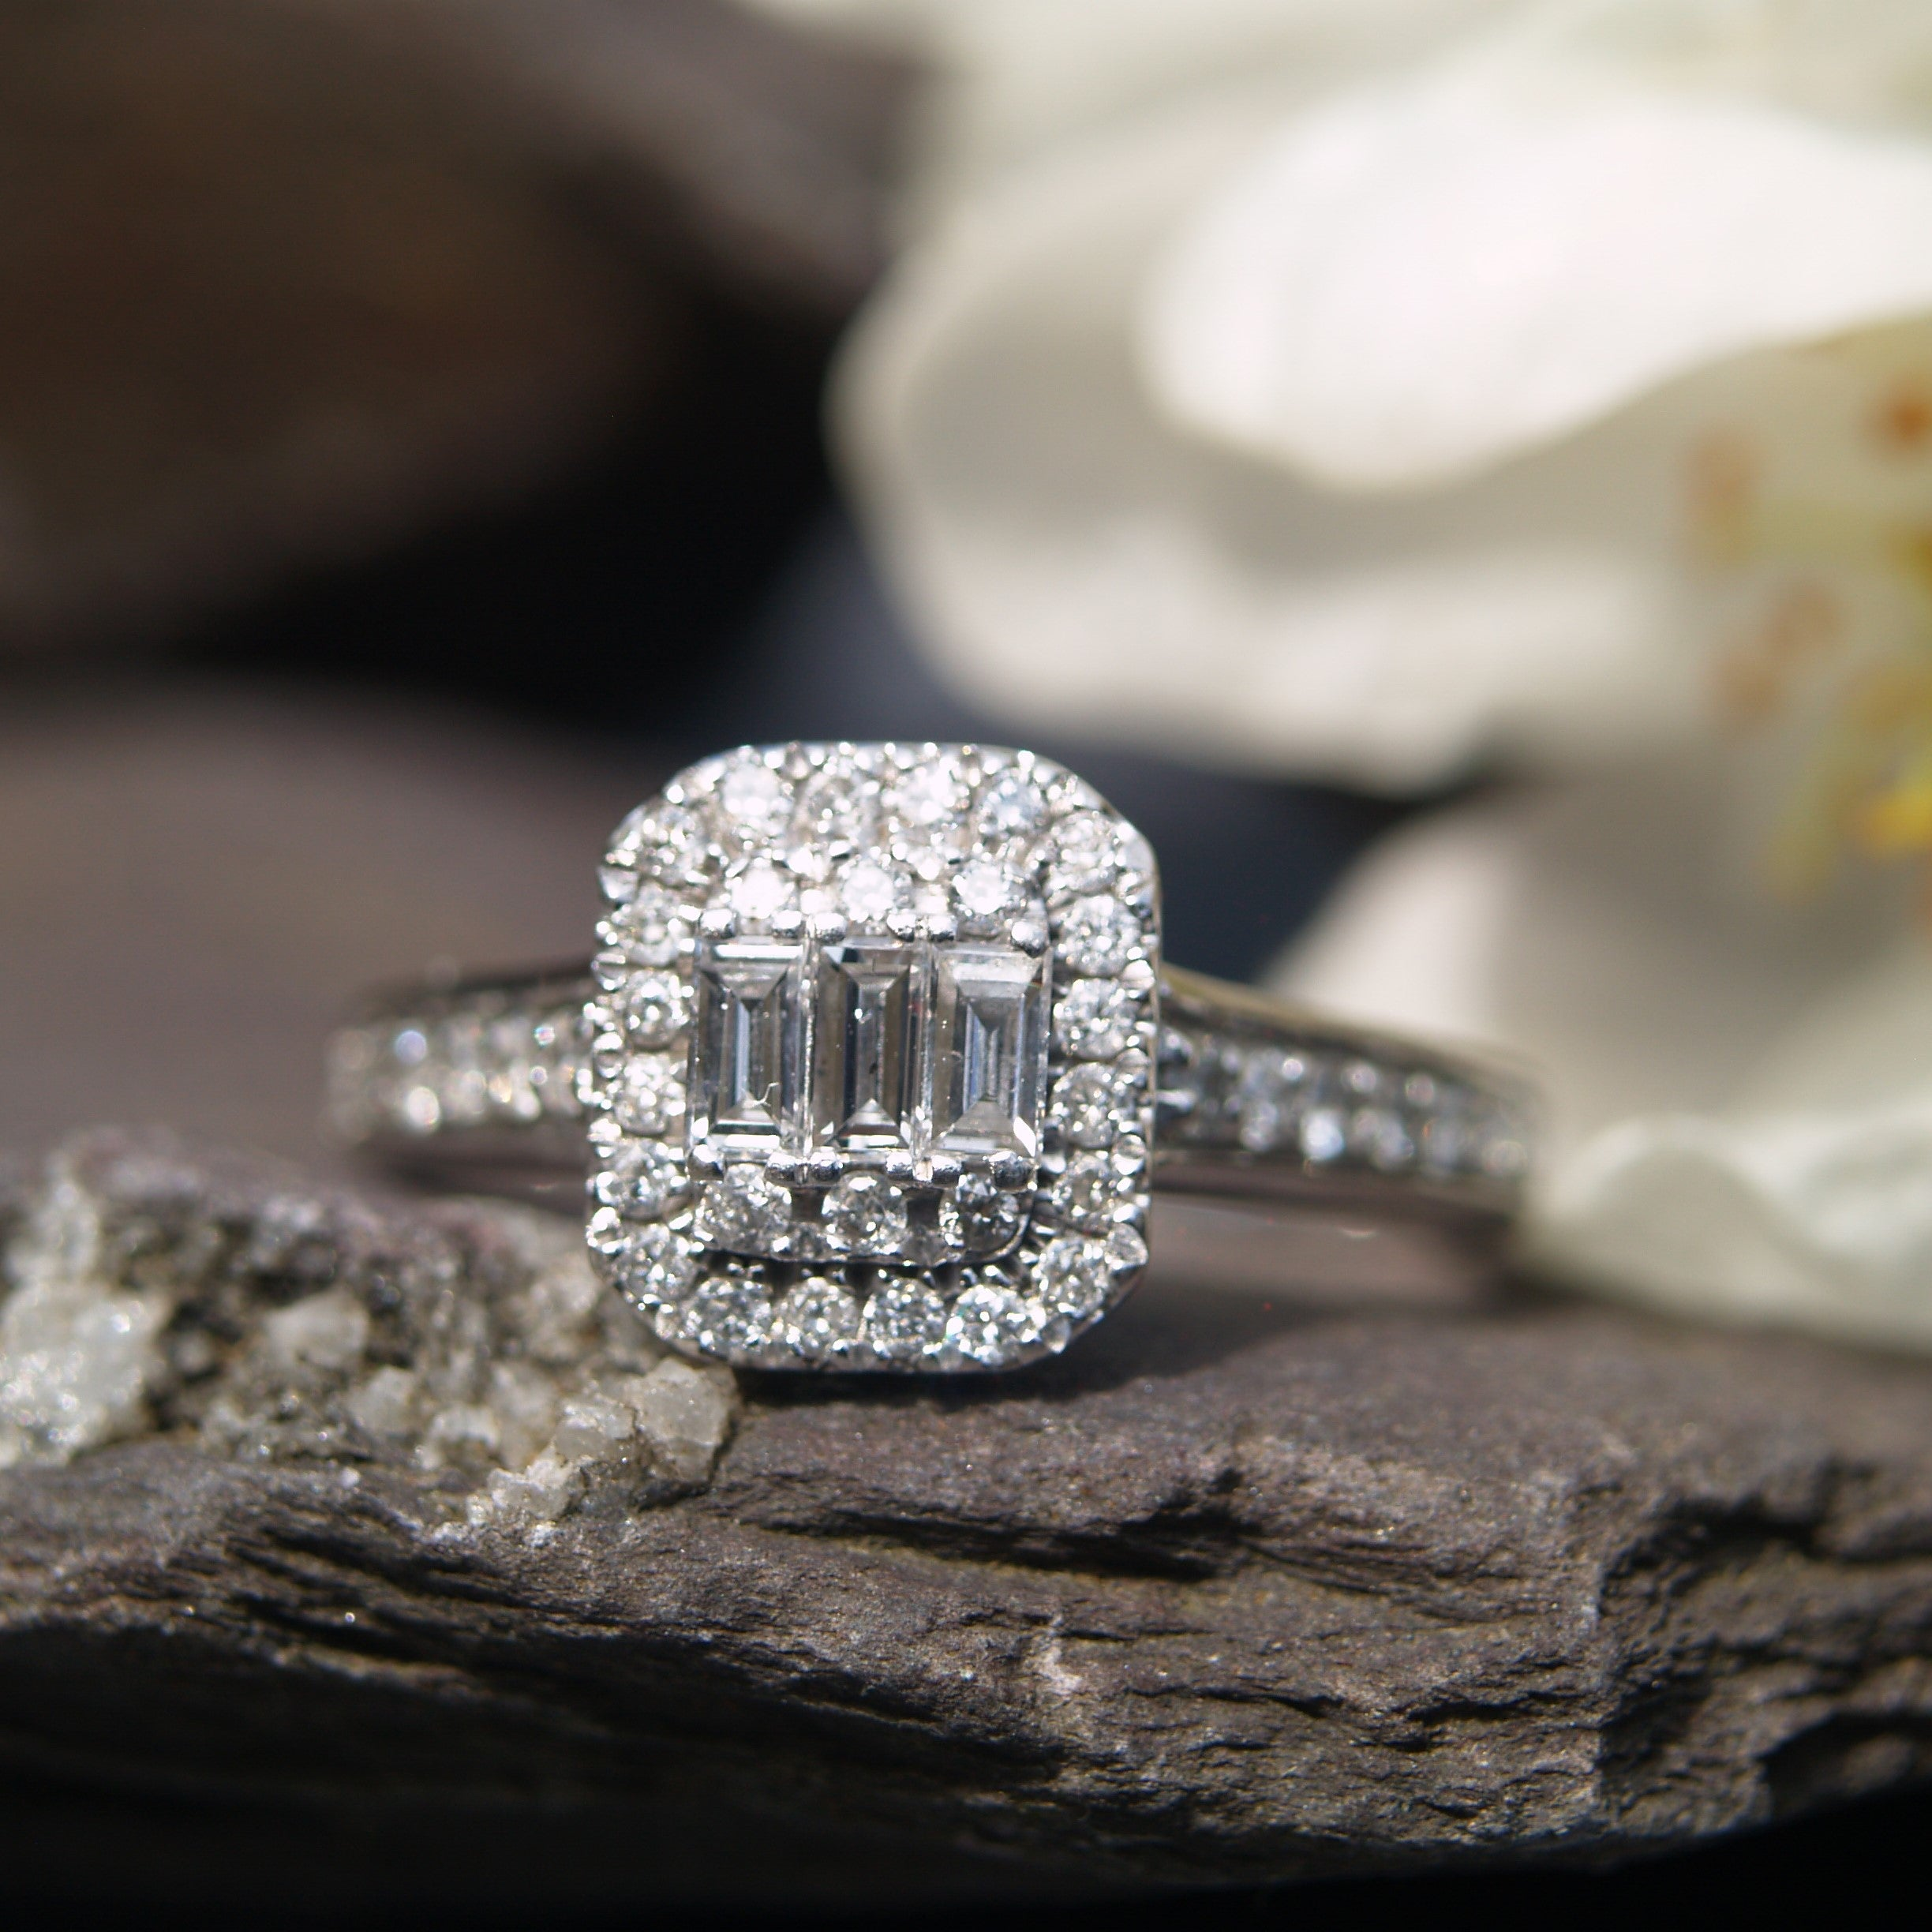 9ct White Gold Diamond Baguette Halo Ring.